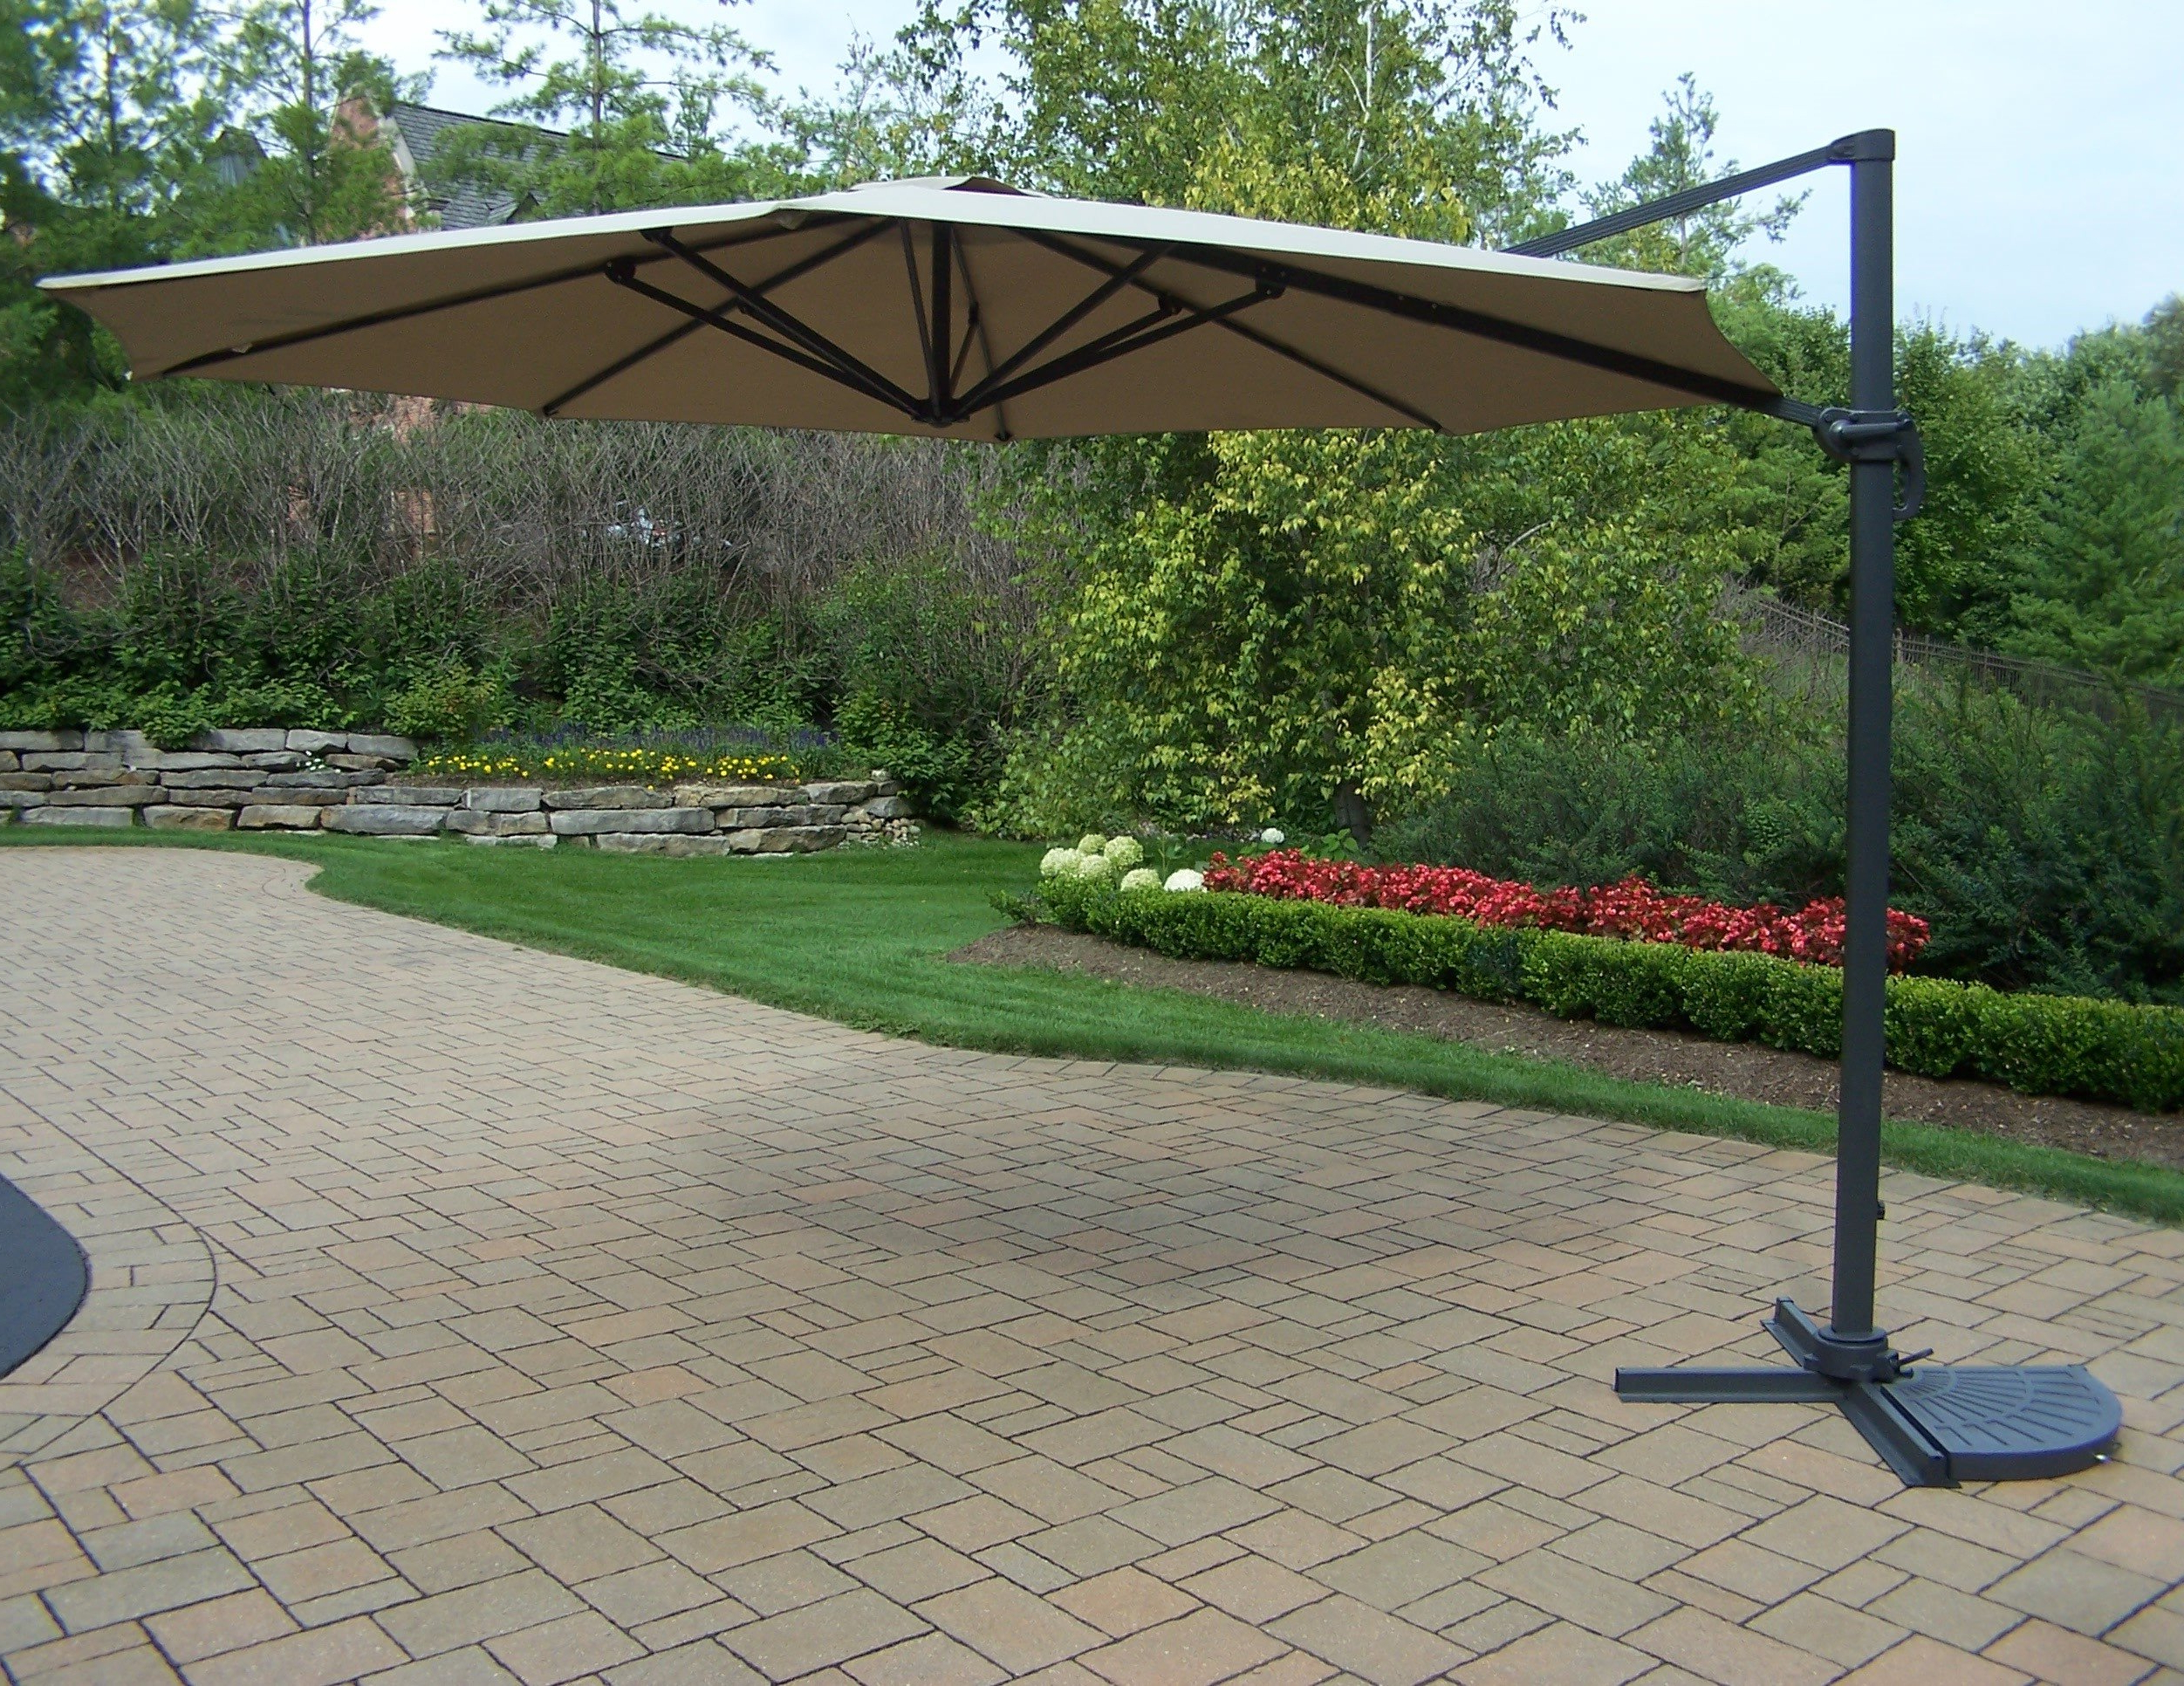 Well Known 11' Cantilever Umbrella Intended For Elaina Cantilever Umbrellas (View 18 of 20)